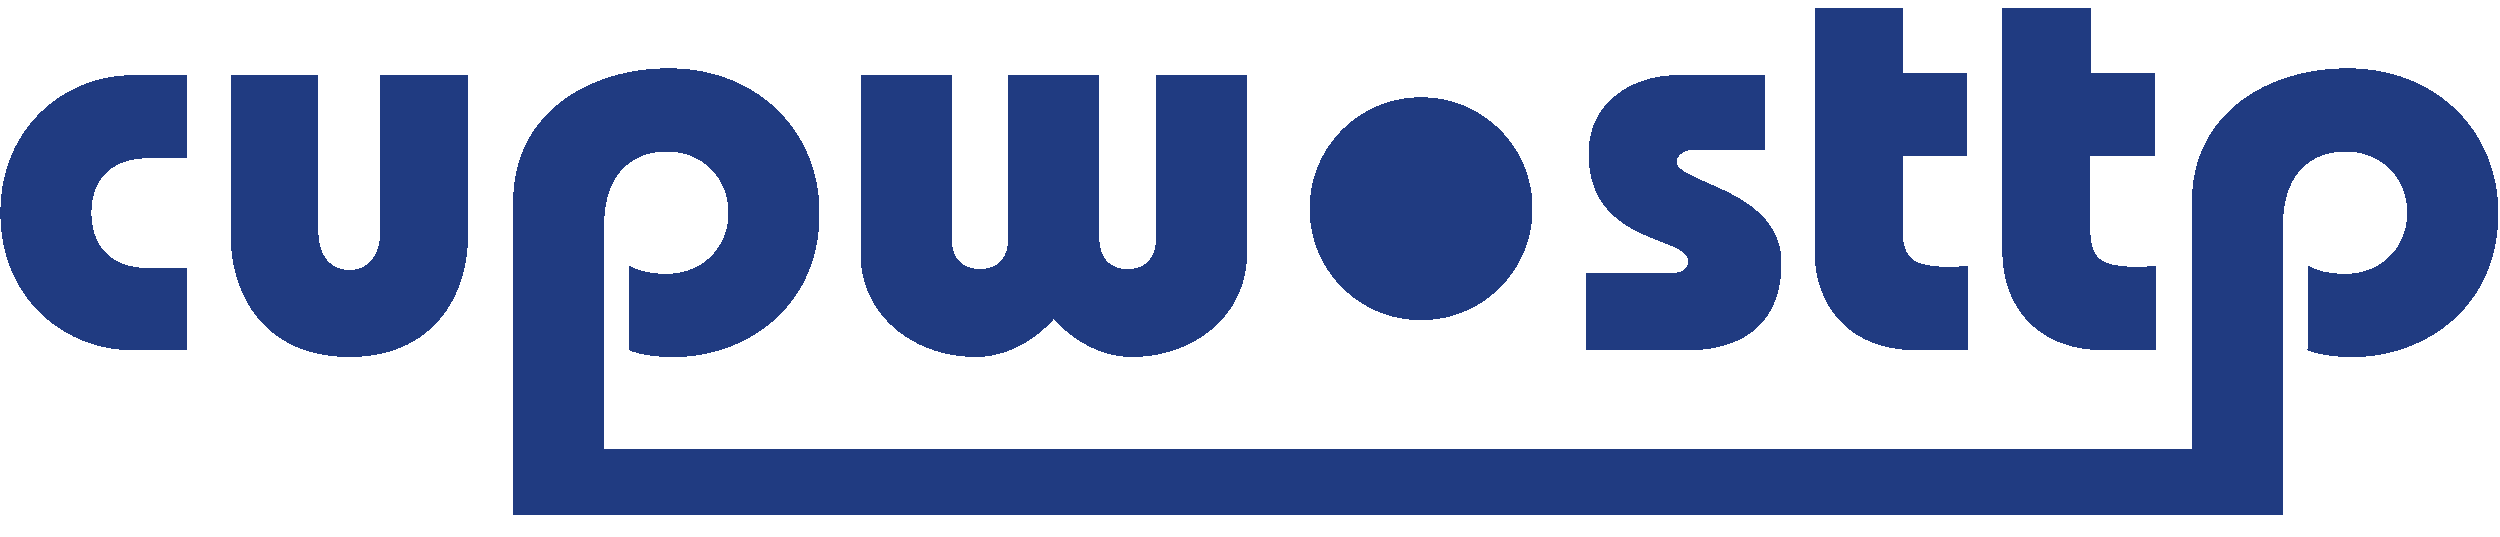 Logo: Canadian Union of Postal Workers